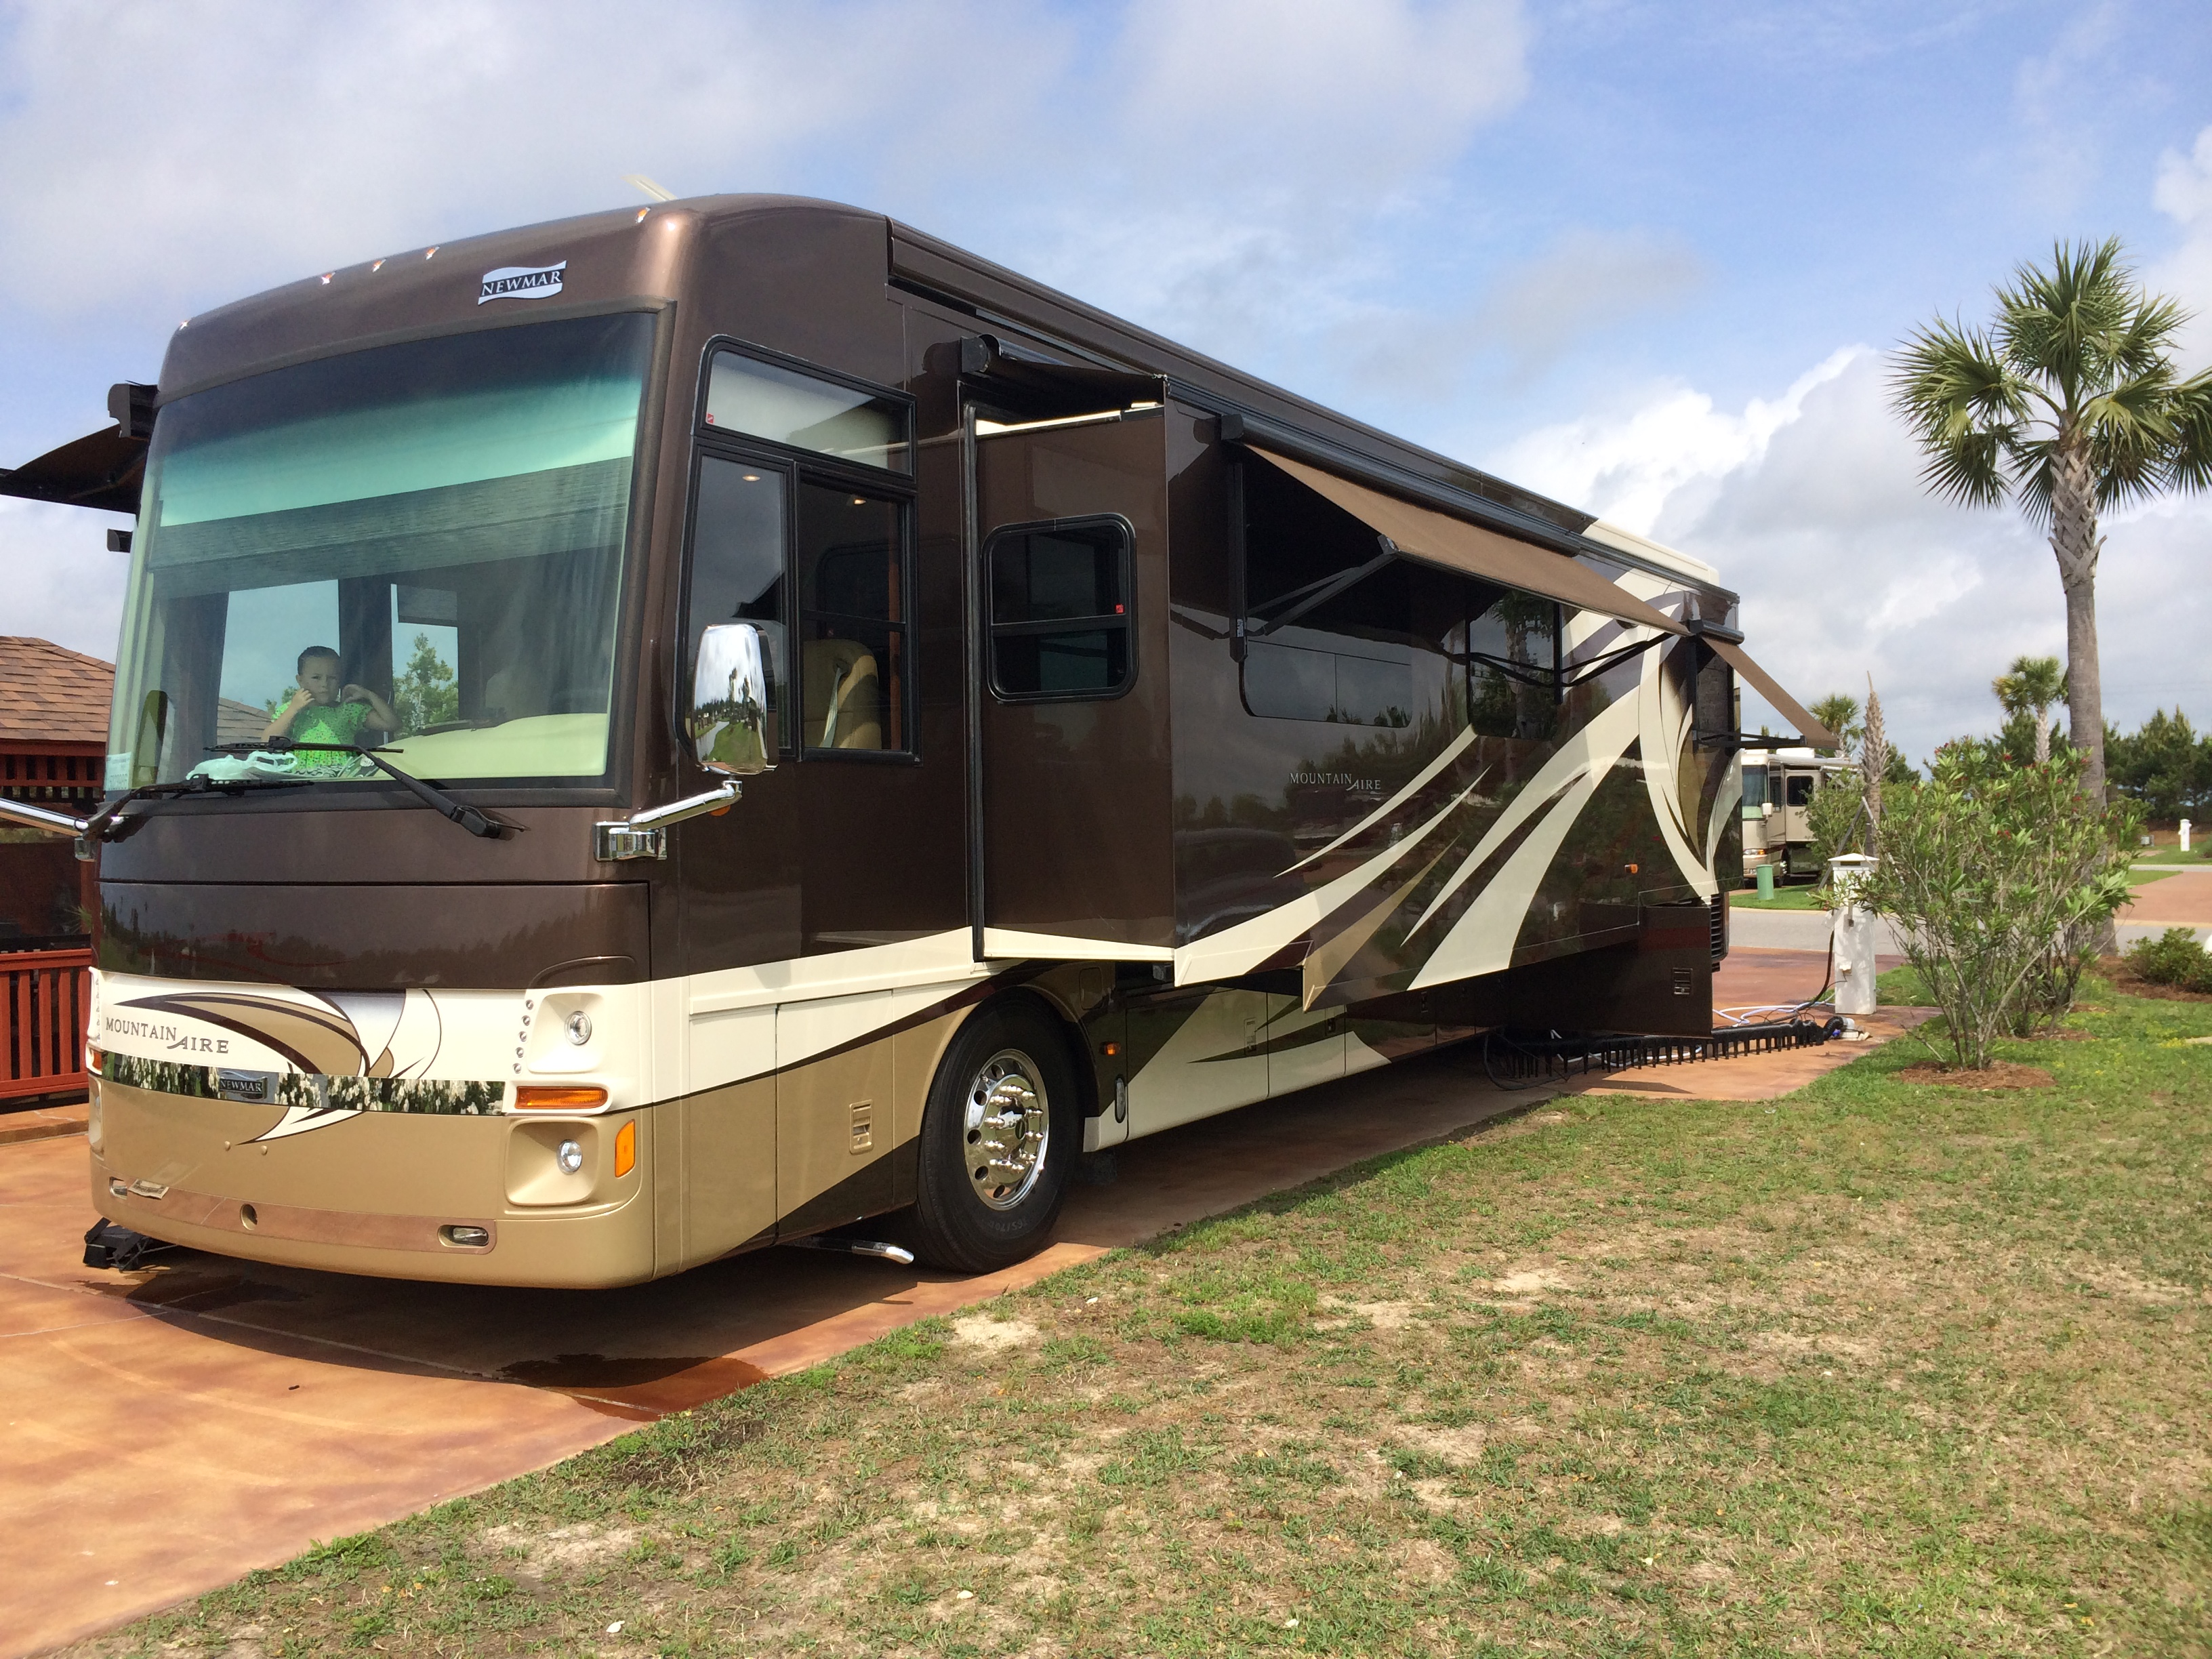 See full specs here:  https://www.rvusa.com/rv-guide/2014-newmar-mountain-aire-class-a-floorplan-4364-tr18531 . Newmar Mountain Aire 2014